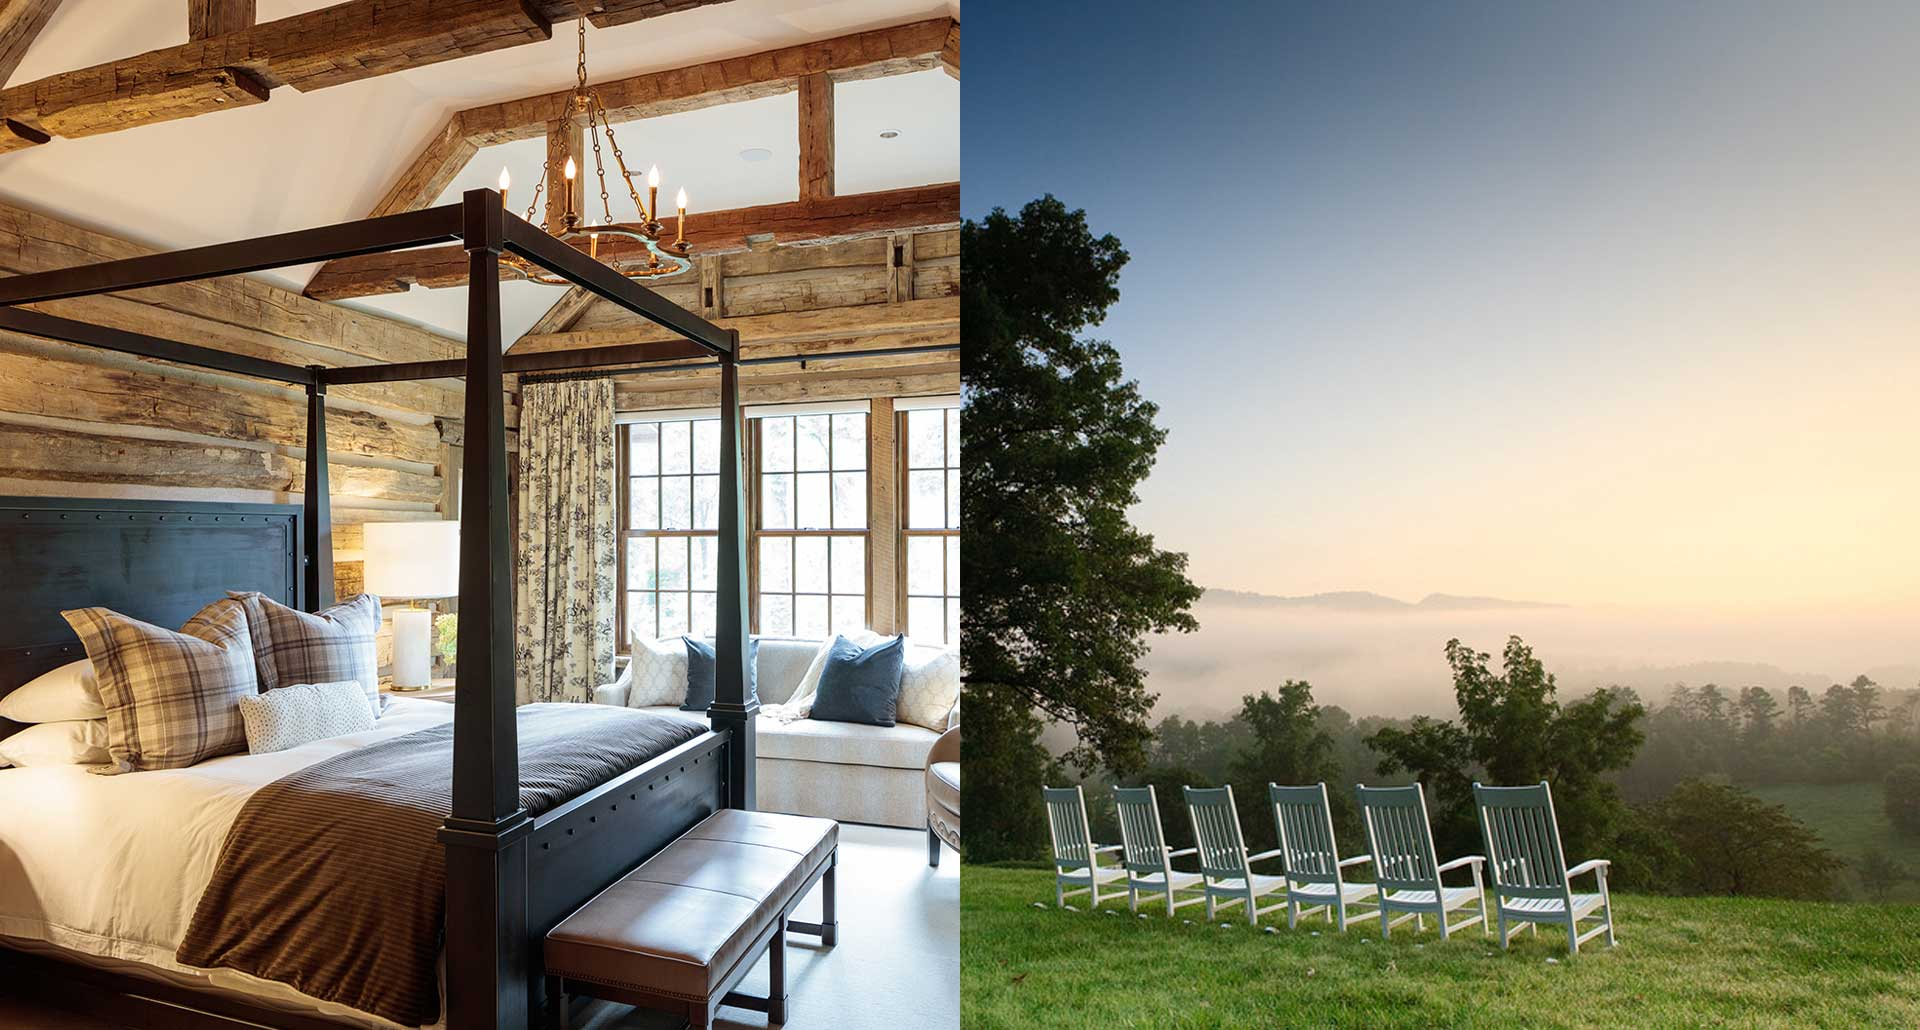 Blackberry Farm - romantic boutique hotel in Great Smoky Mountains, Tennessee